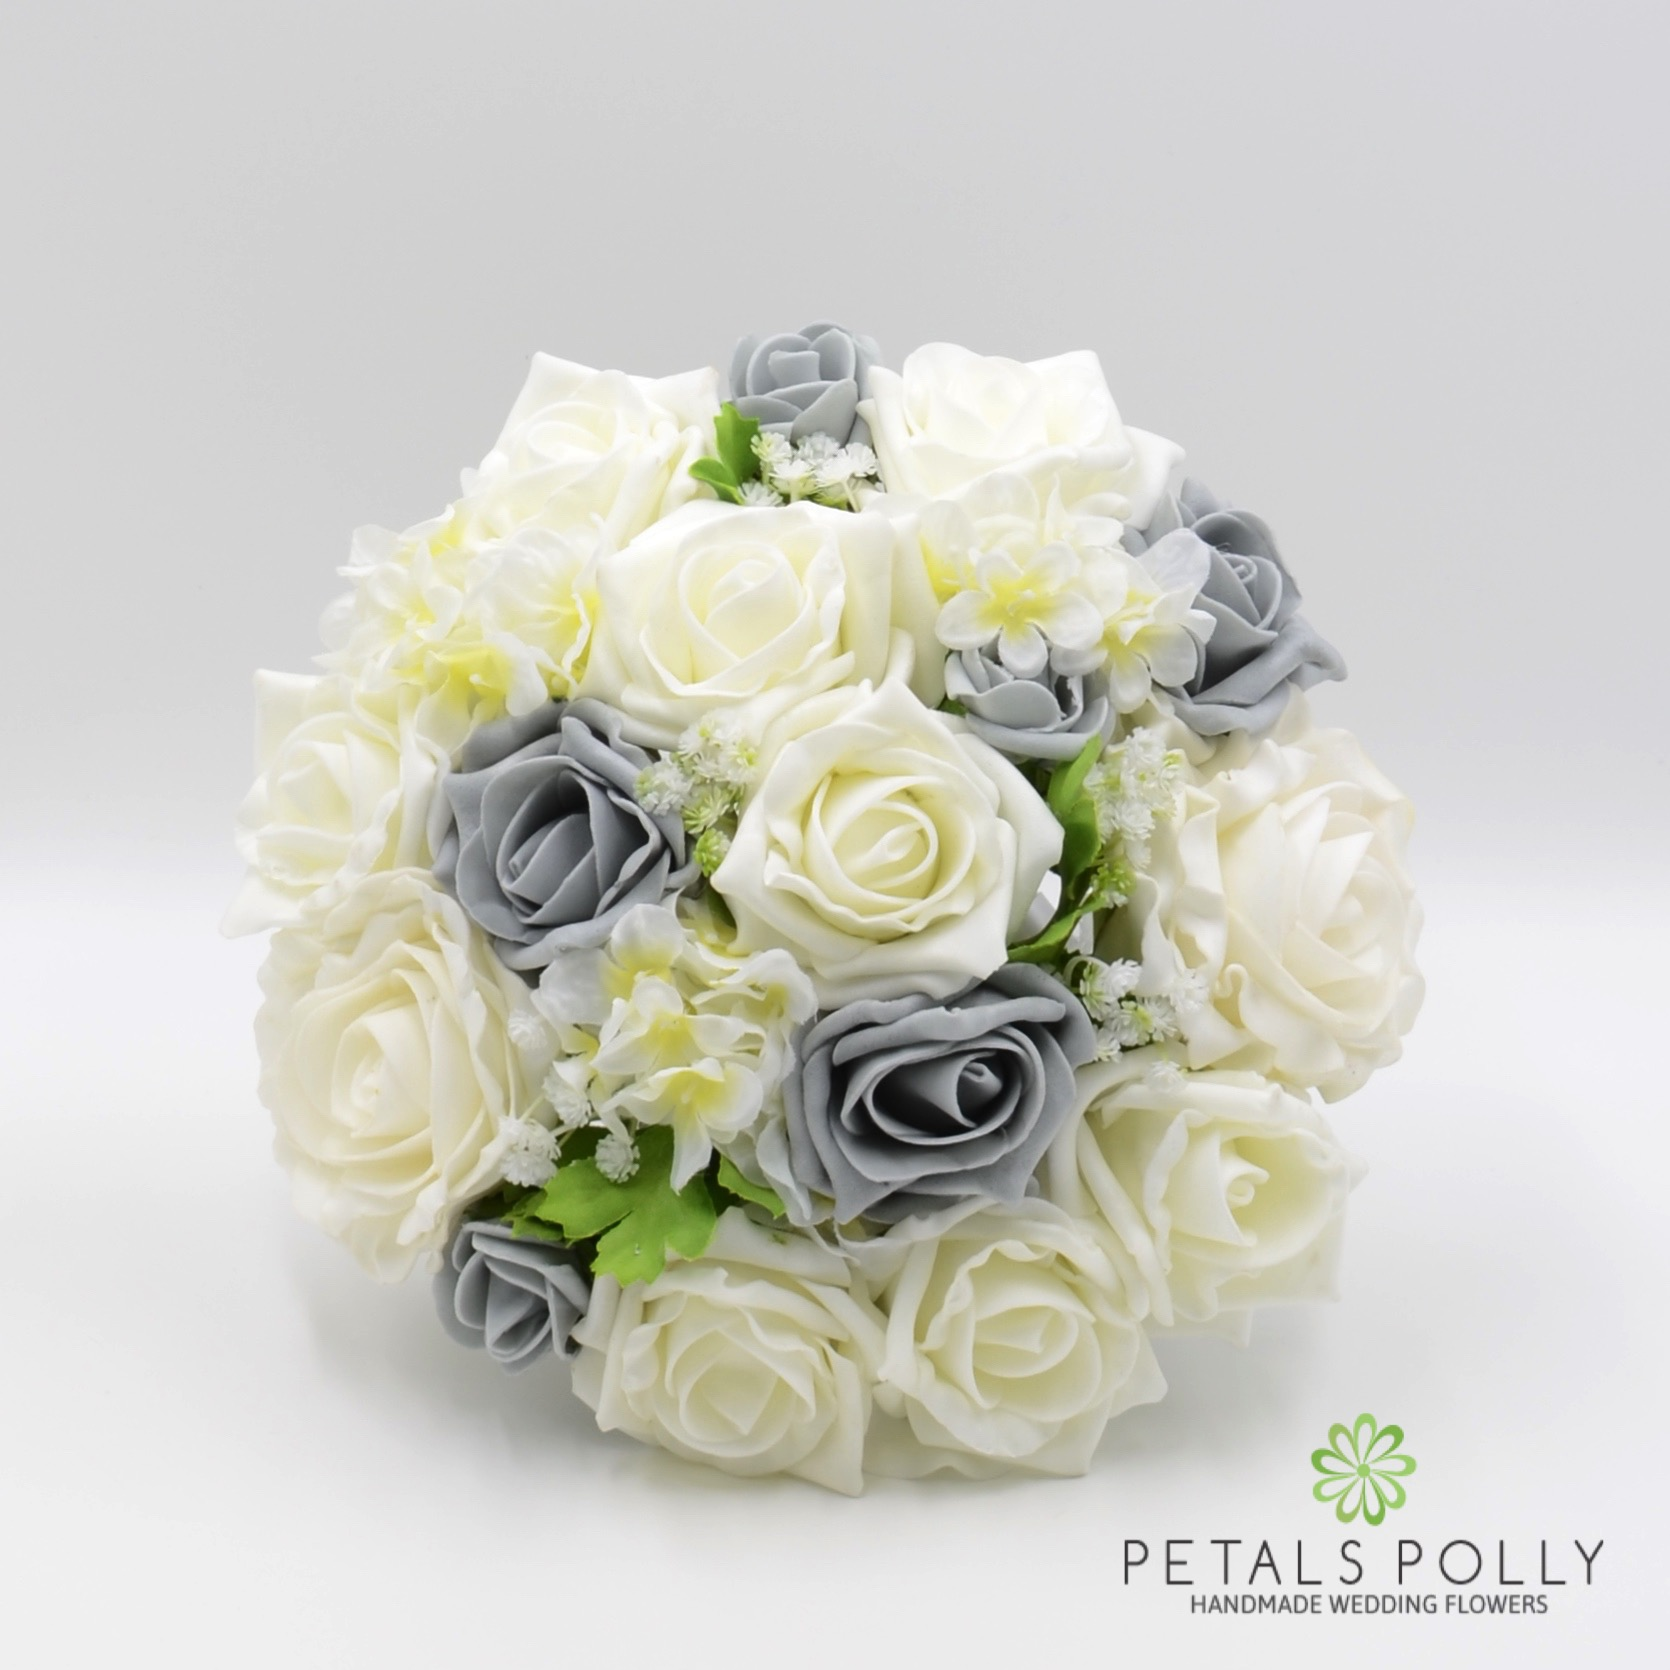 Grey & Ivory Rose Bridesmaids Posy with Ranunculus and Hydrangea -